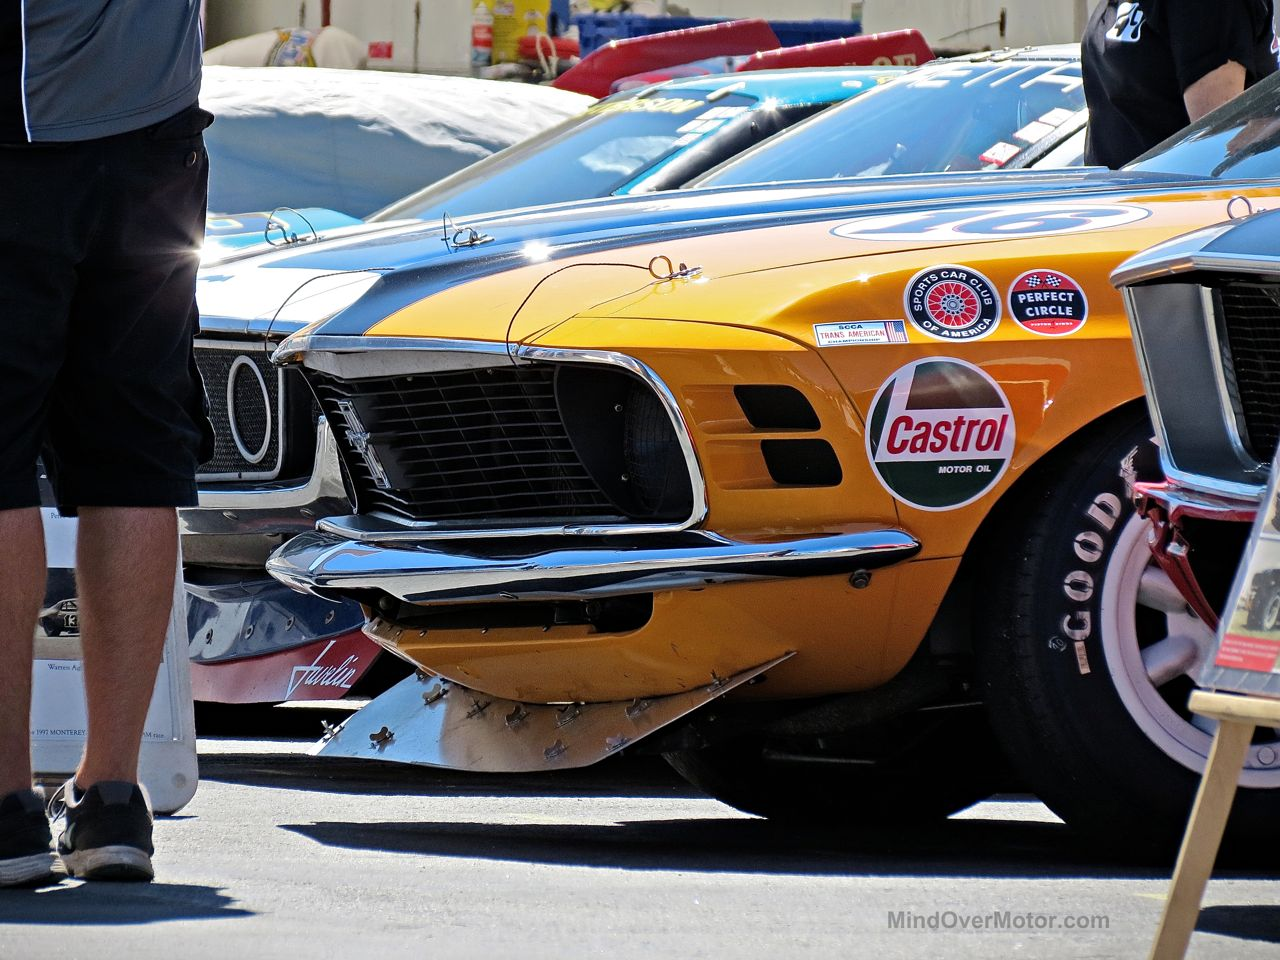 Ford Mustand Boss 302 Race Car Laguna Seca